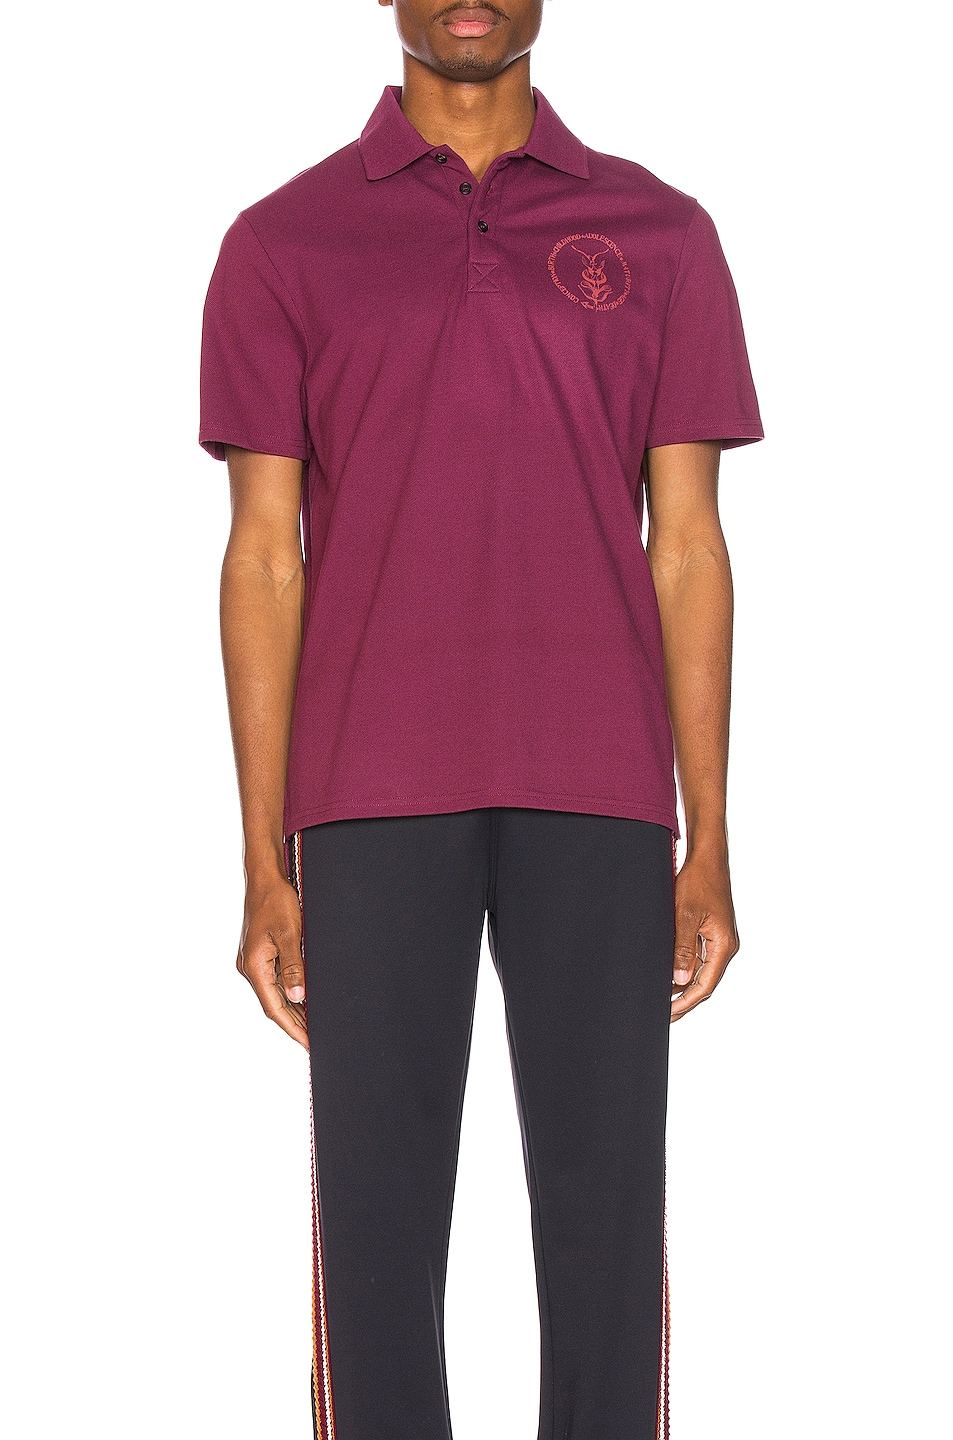 Image 1 of Wales Bonner Soul Polo in Burgundy